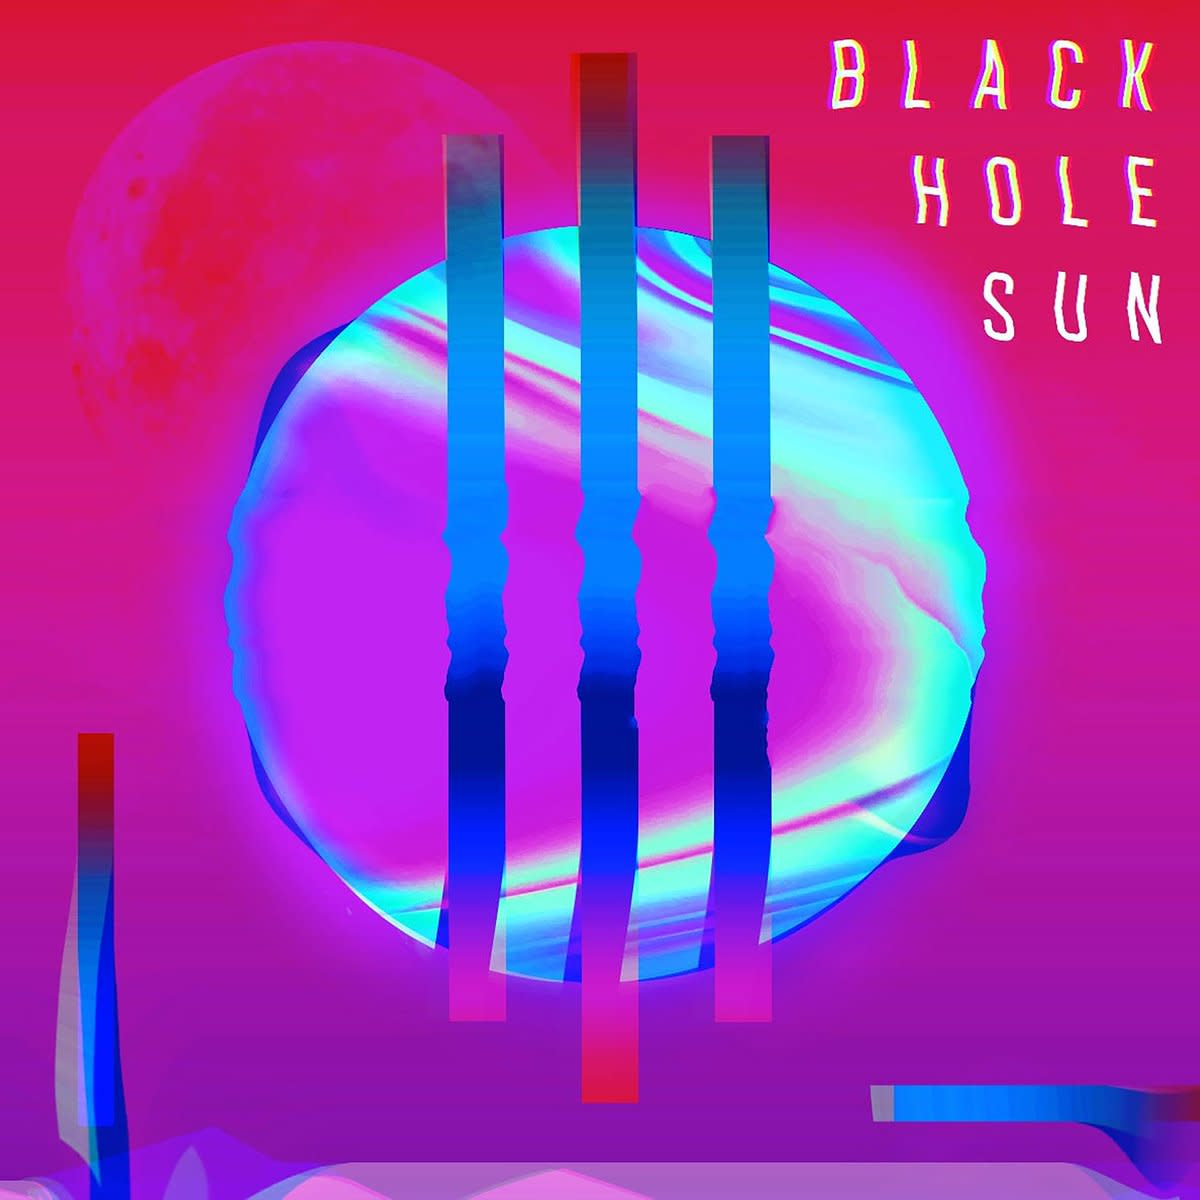 Black Hole Sun Prismo Cover Art